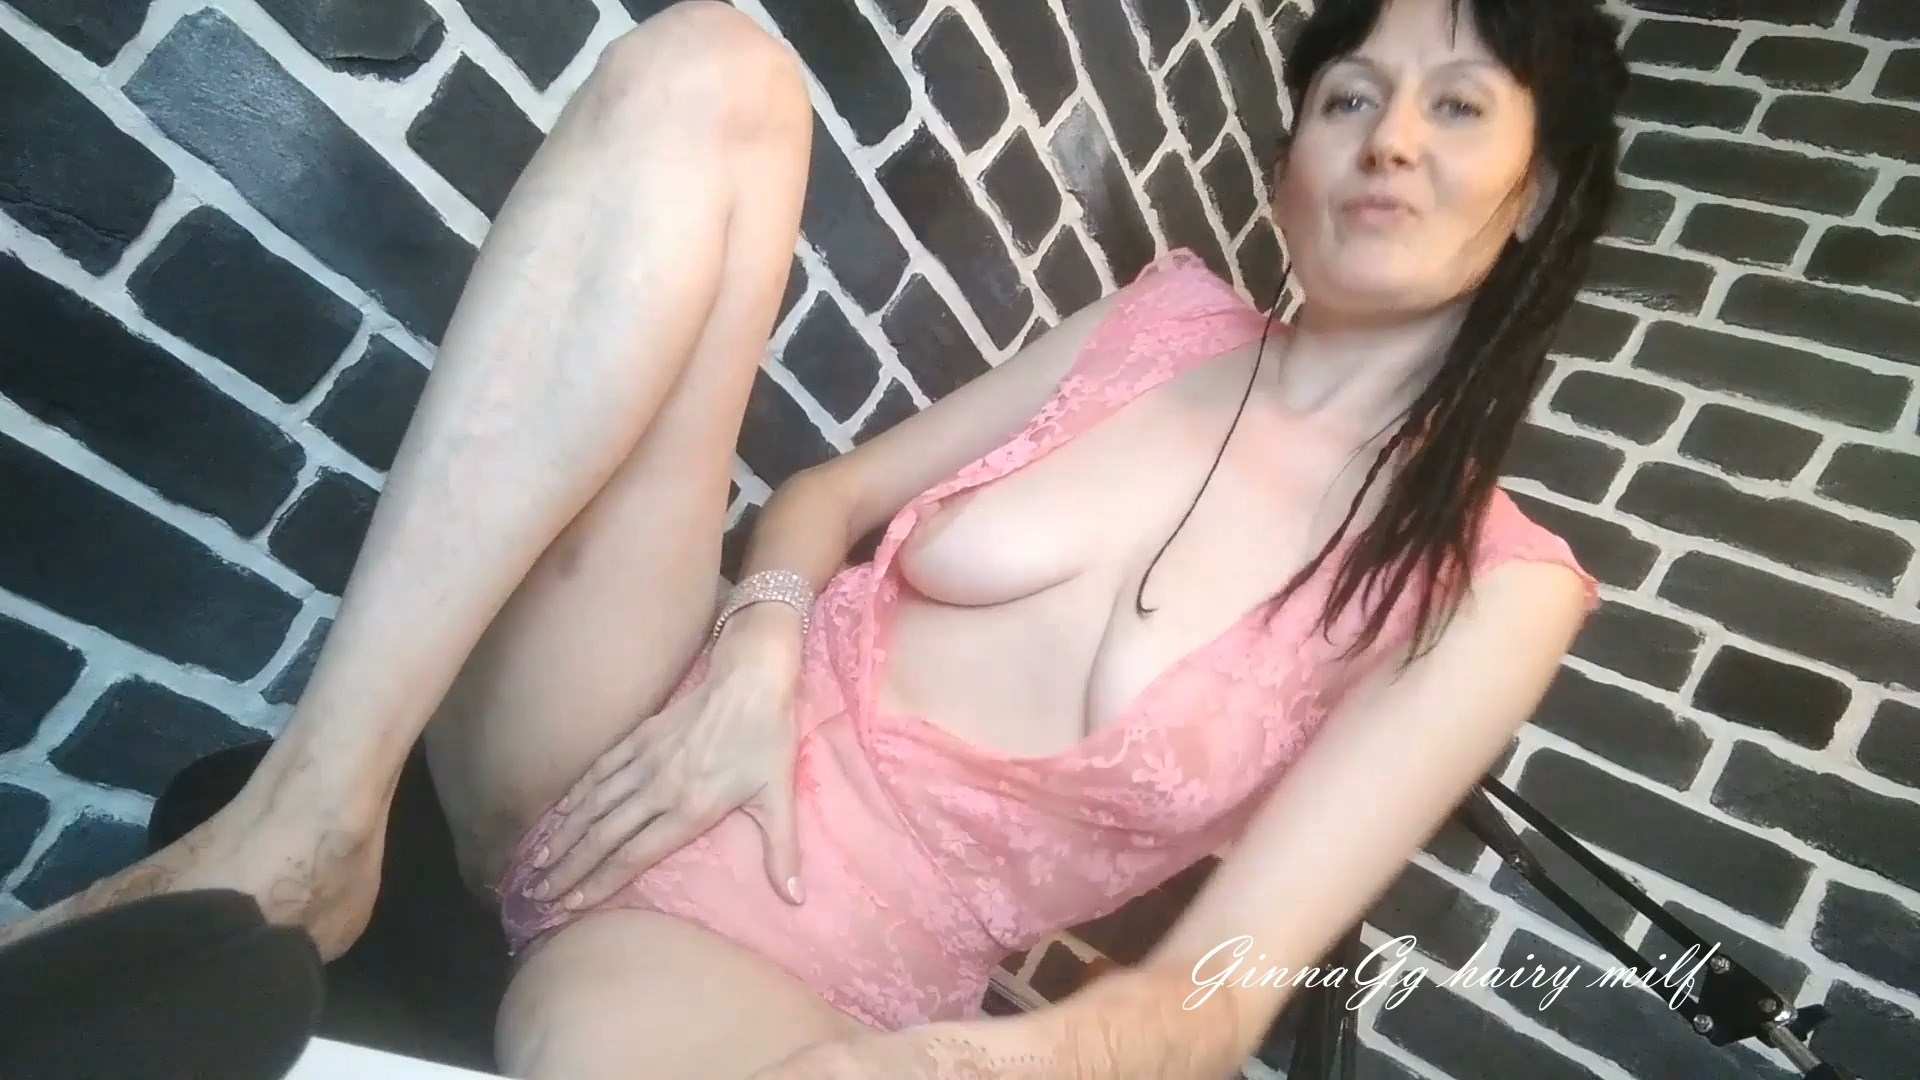 Ginnia - Big Nipples and Hanging Tits, Hairy Ledy